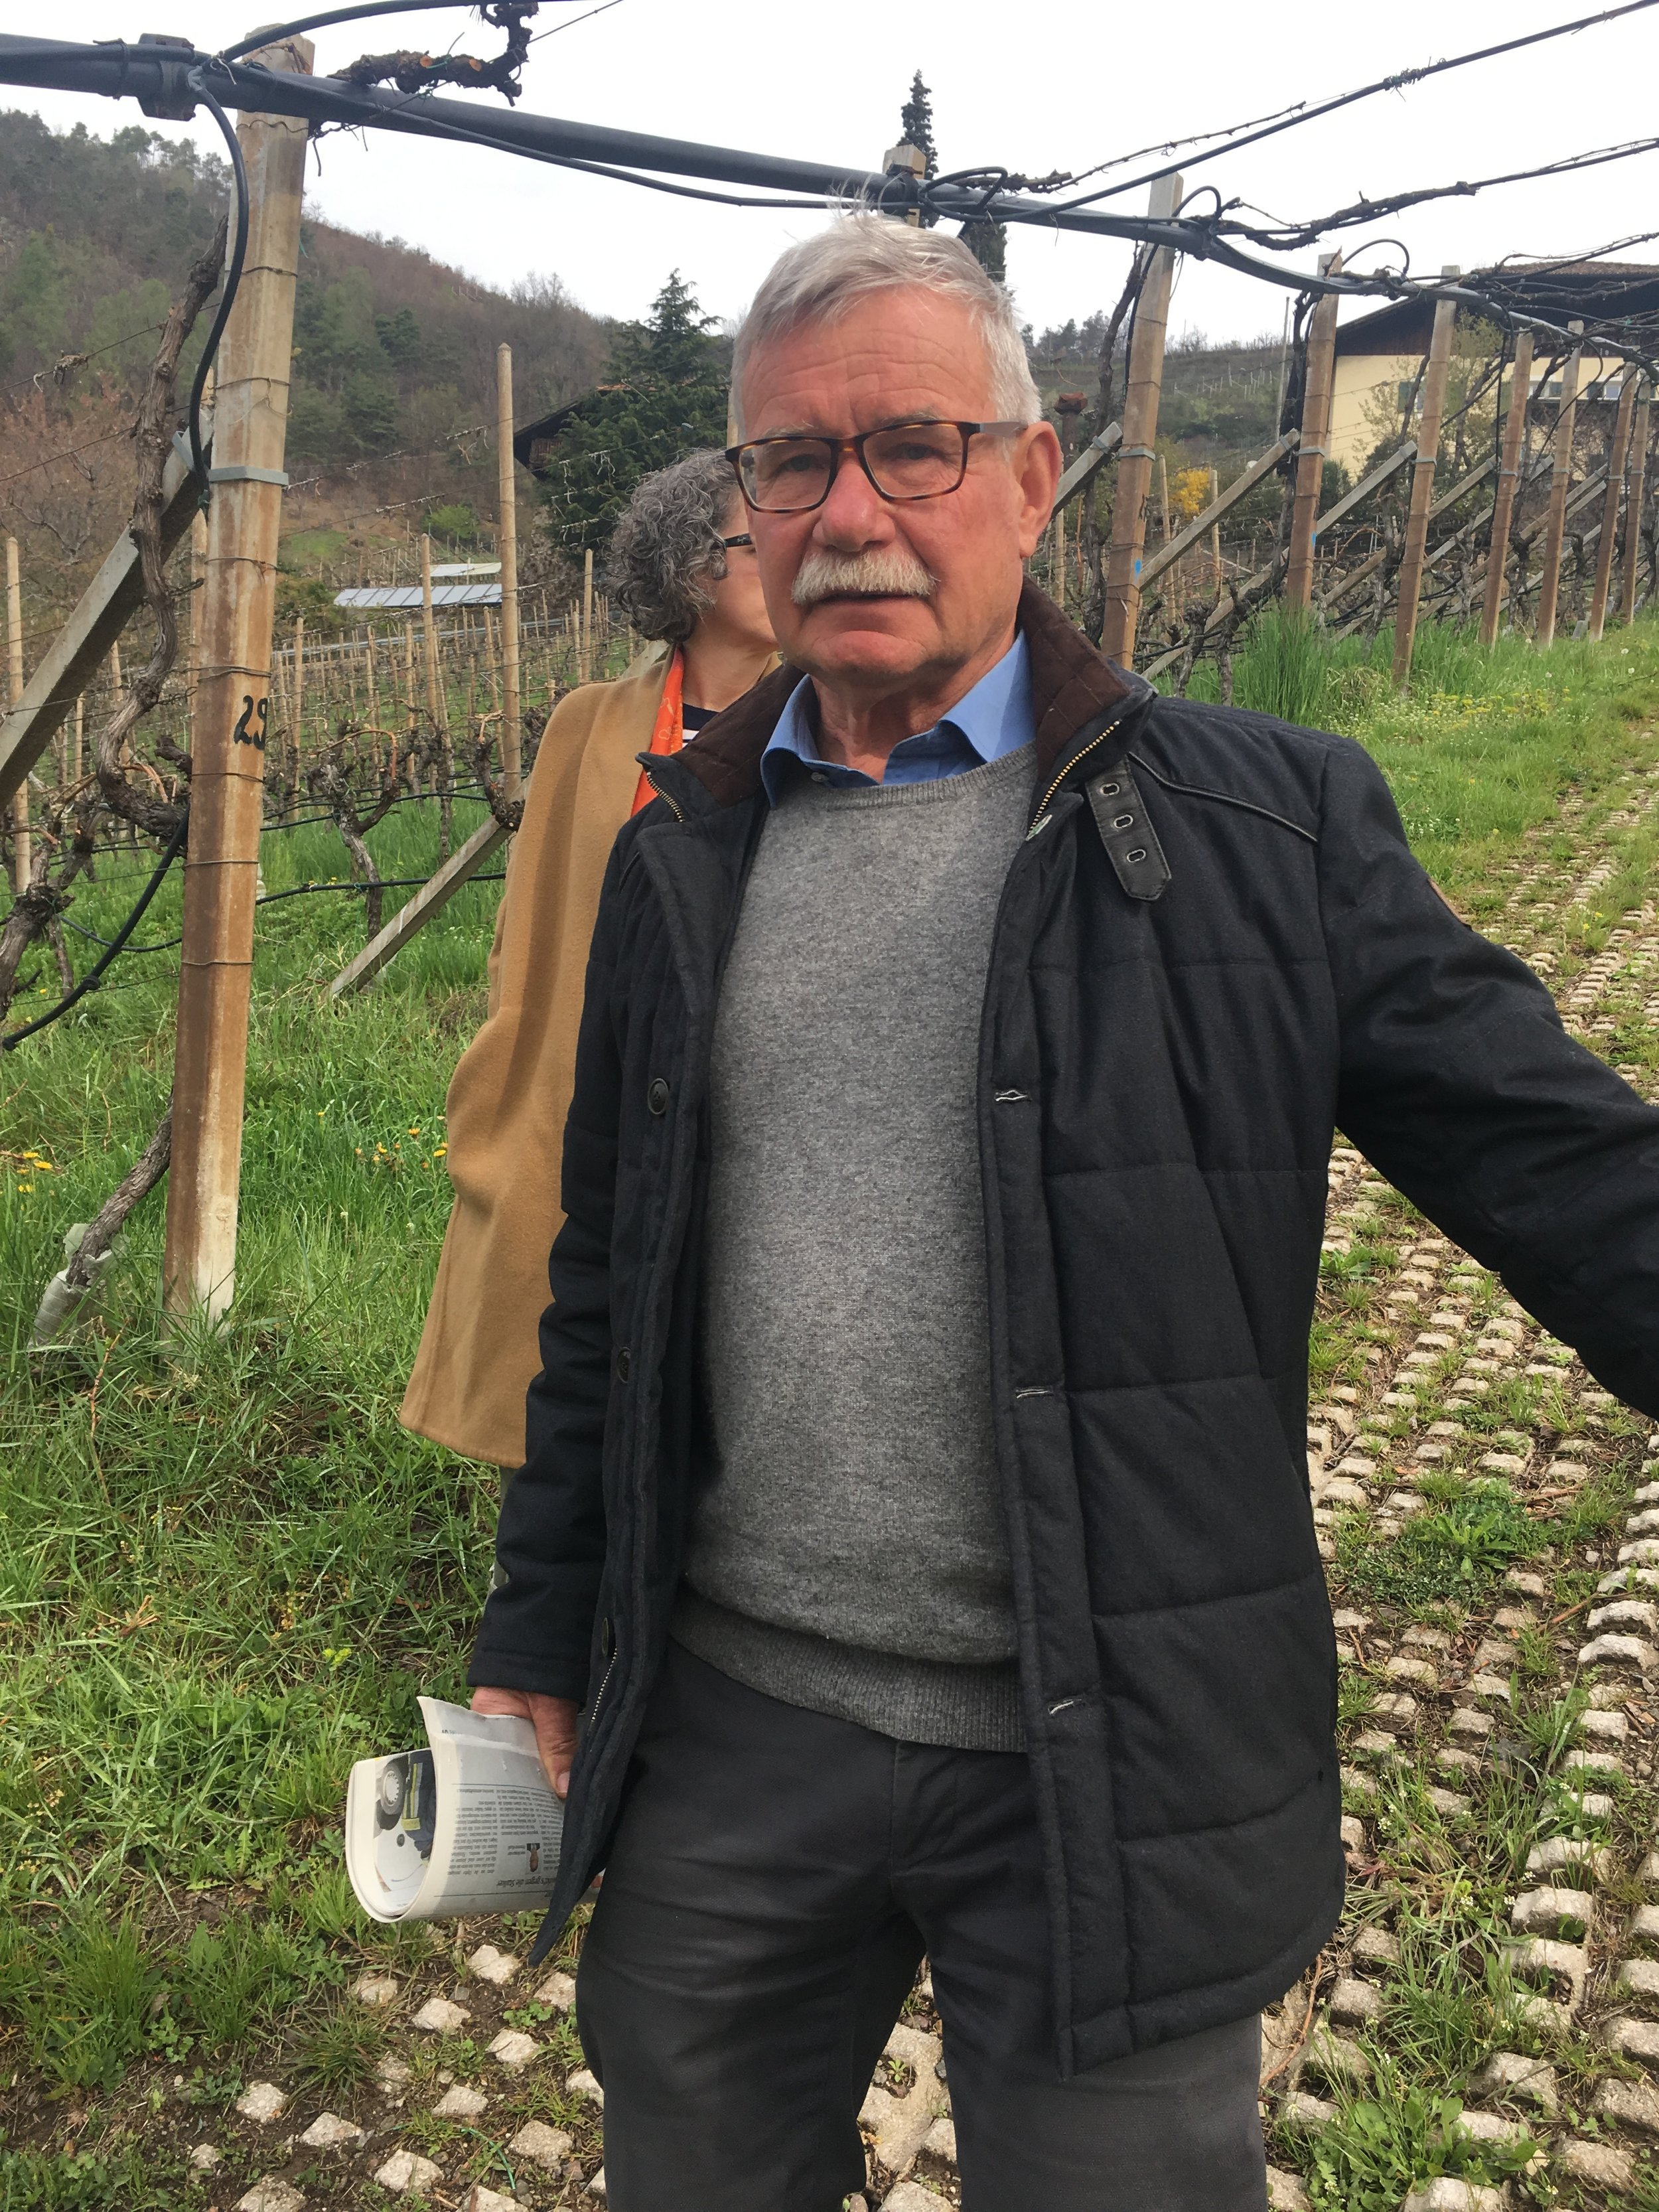 The farmer at Kleinstein, grower of amazing Gewurztraminer